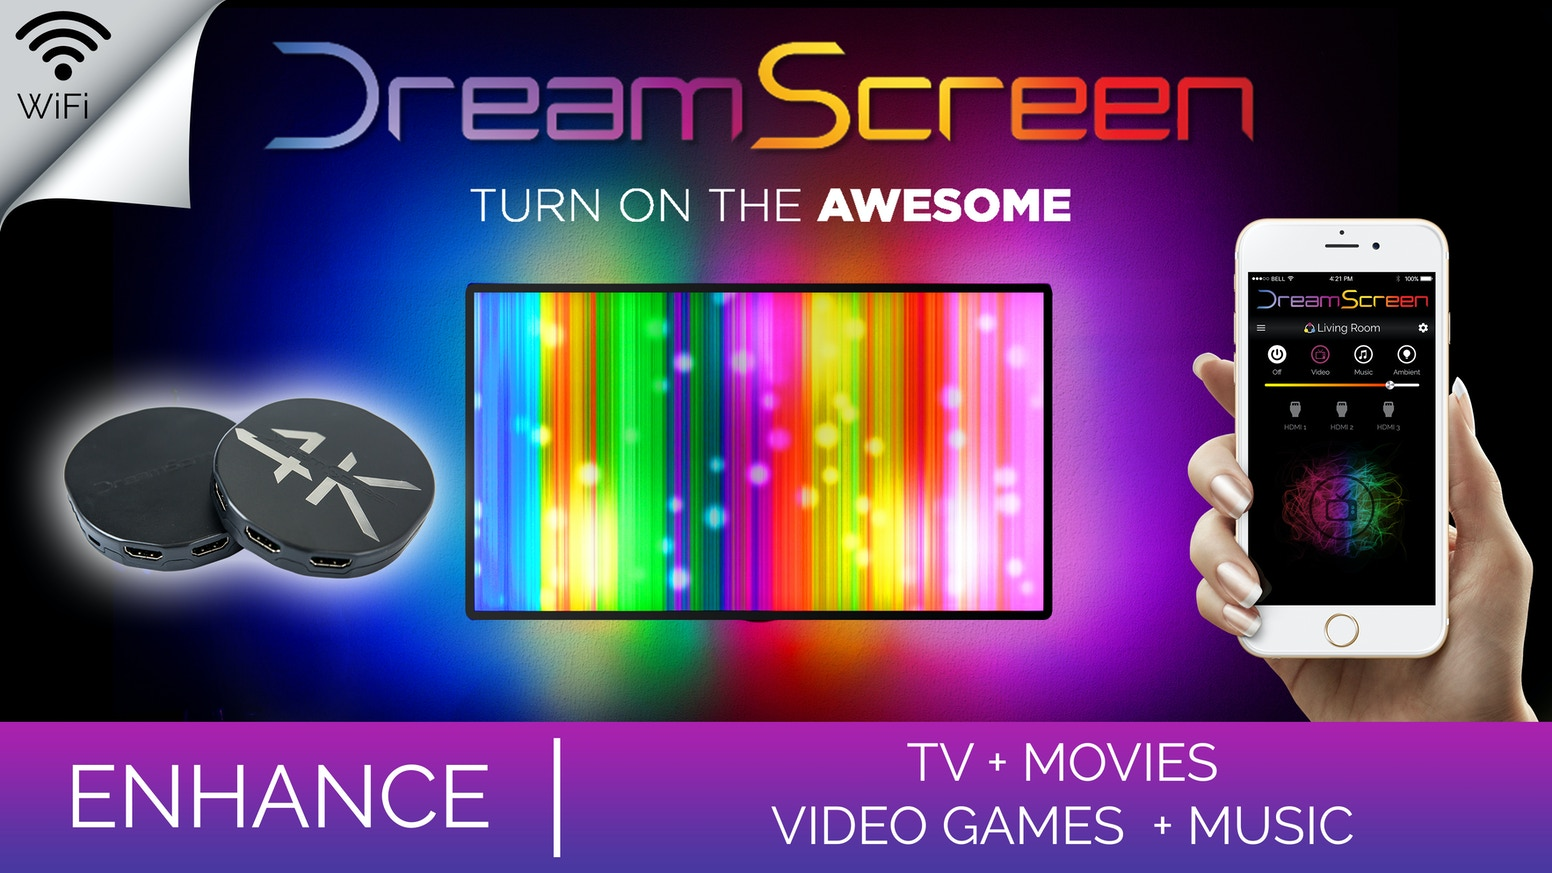 Dreamscreen Hd 4k Smart Tv Backlighting For Any Hdmi By Xfinity Wiring Diagram Enhances Movies Video Games Stretching The Size Softening